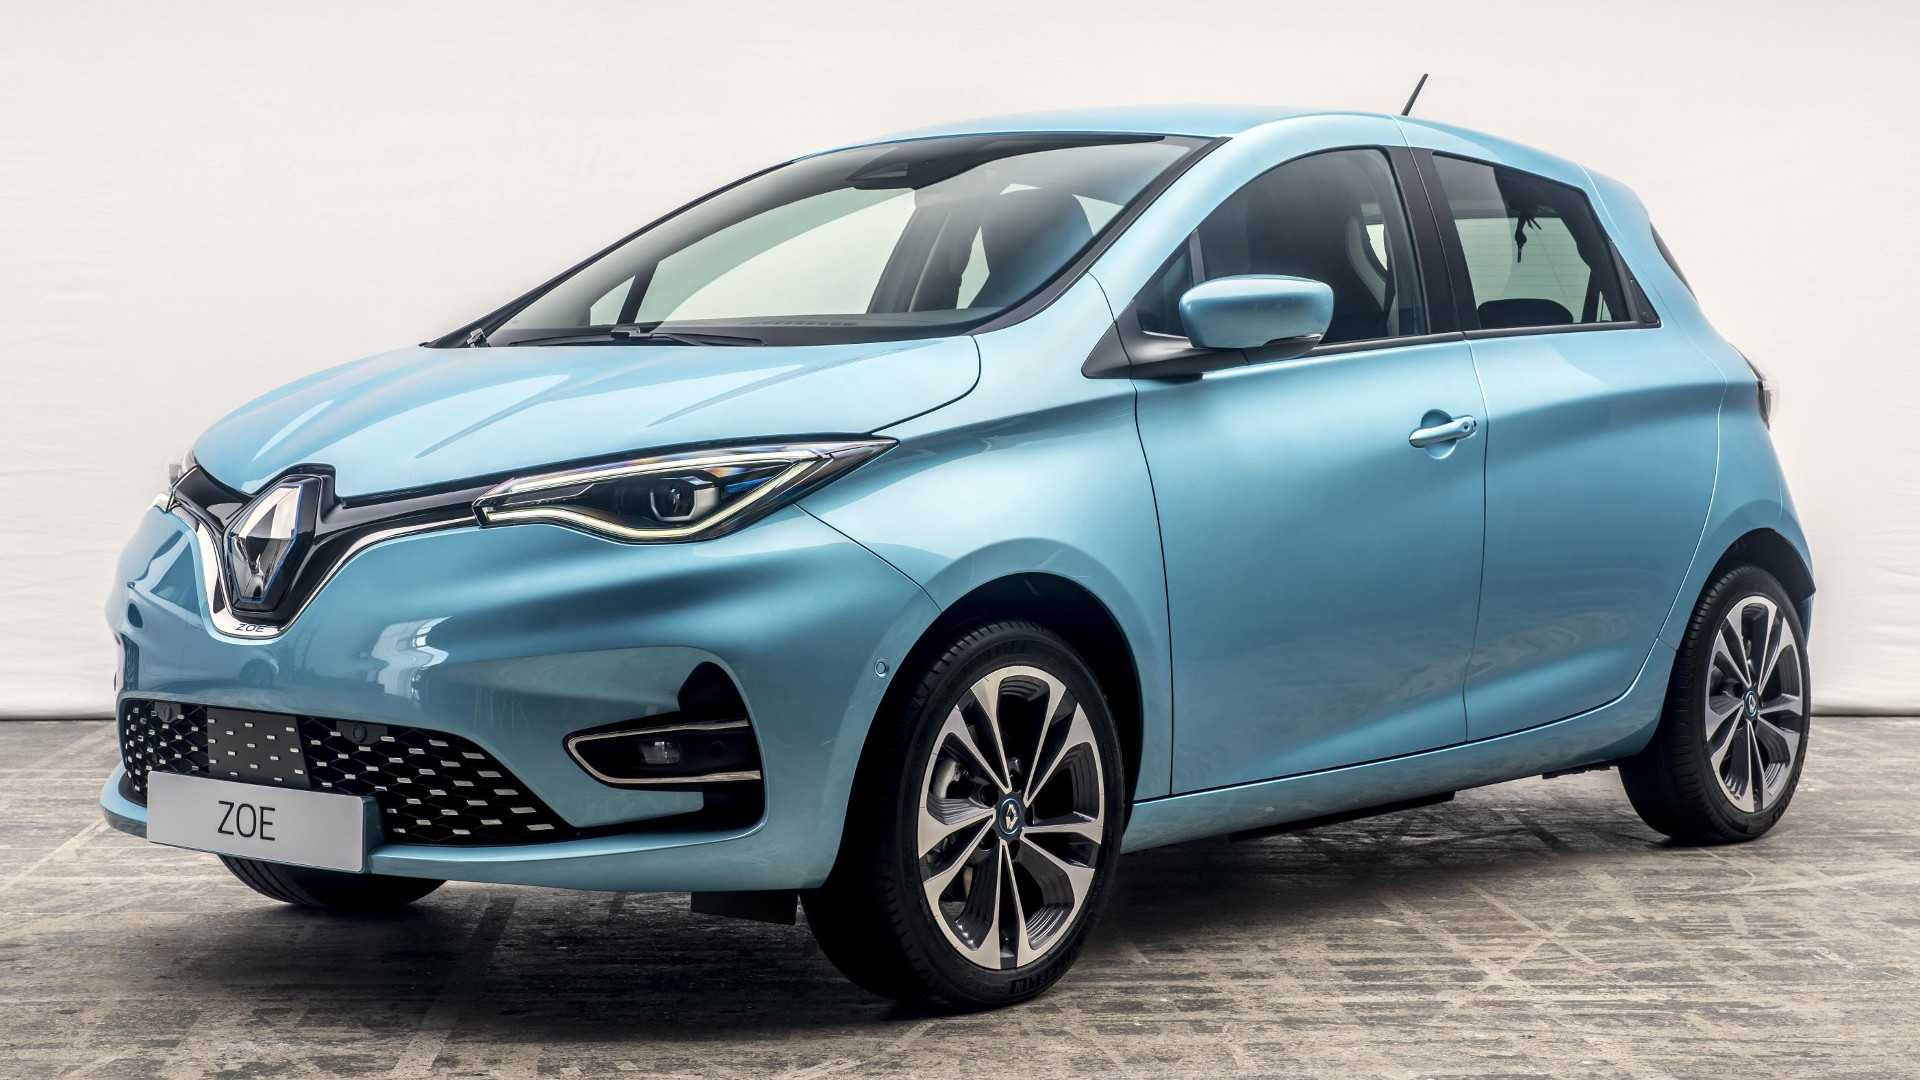 Top Hatchback revealed the 2020 Auto Expo